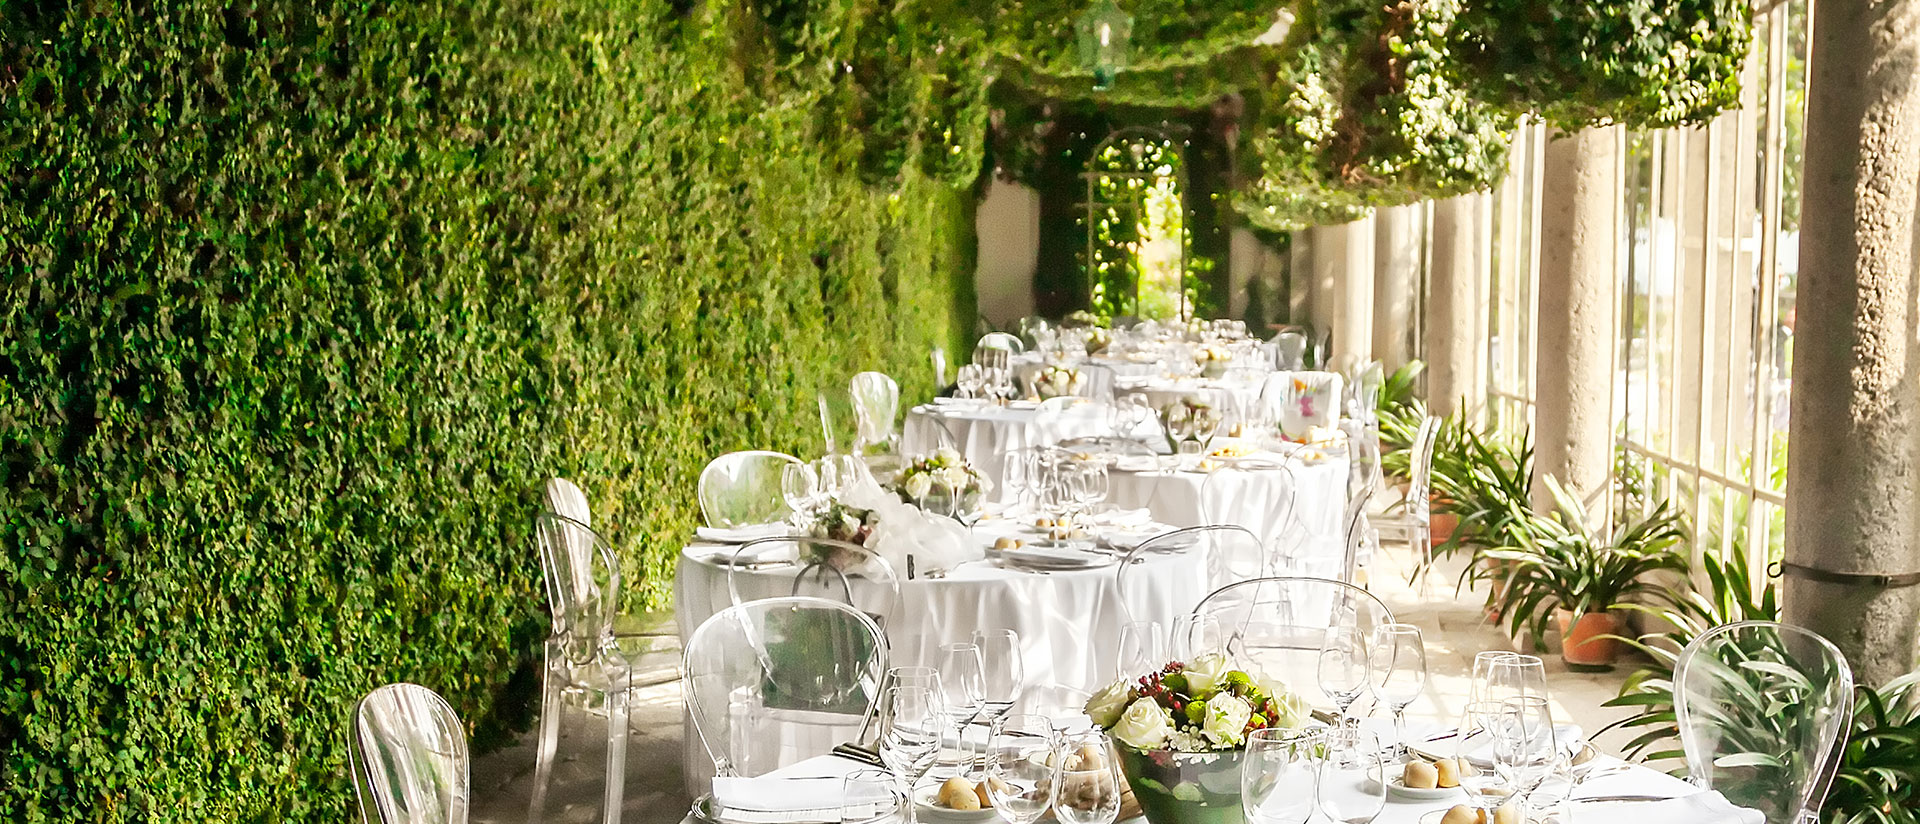 hosting-the-perfect-banquet-theme